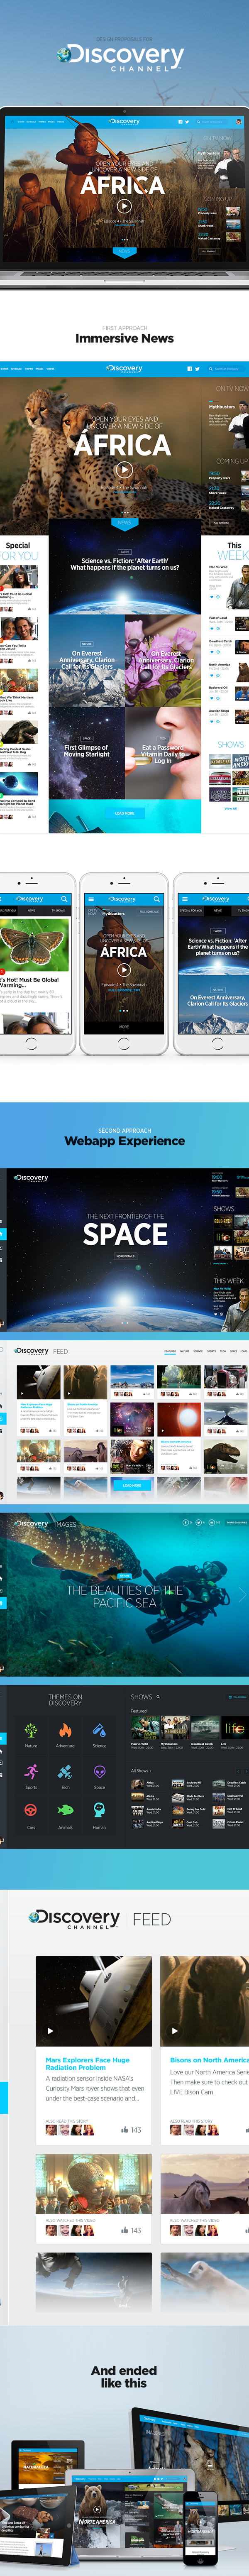 diseno web discovery channel